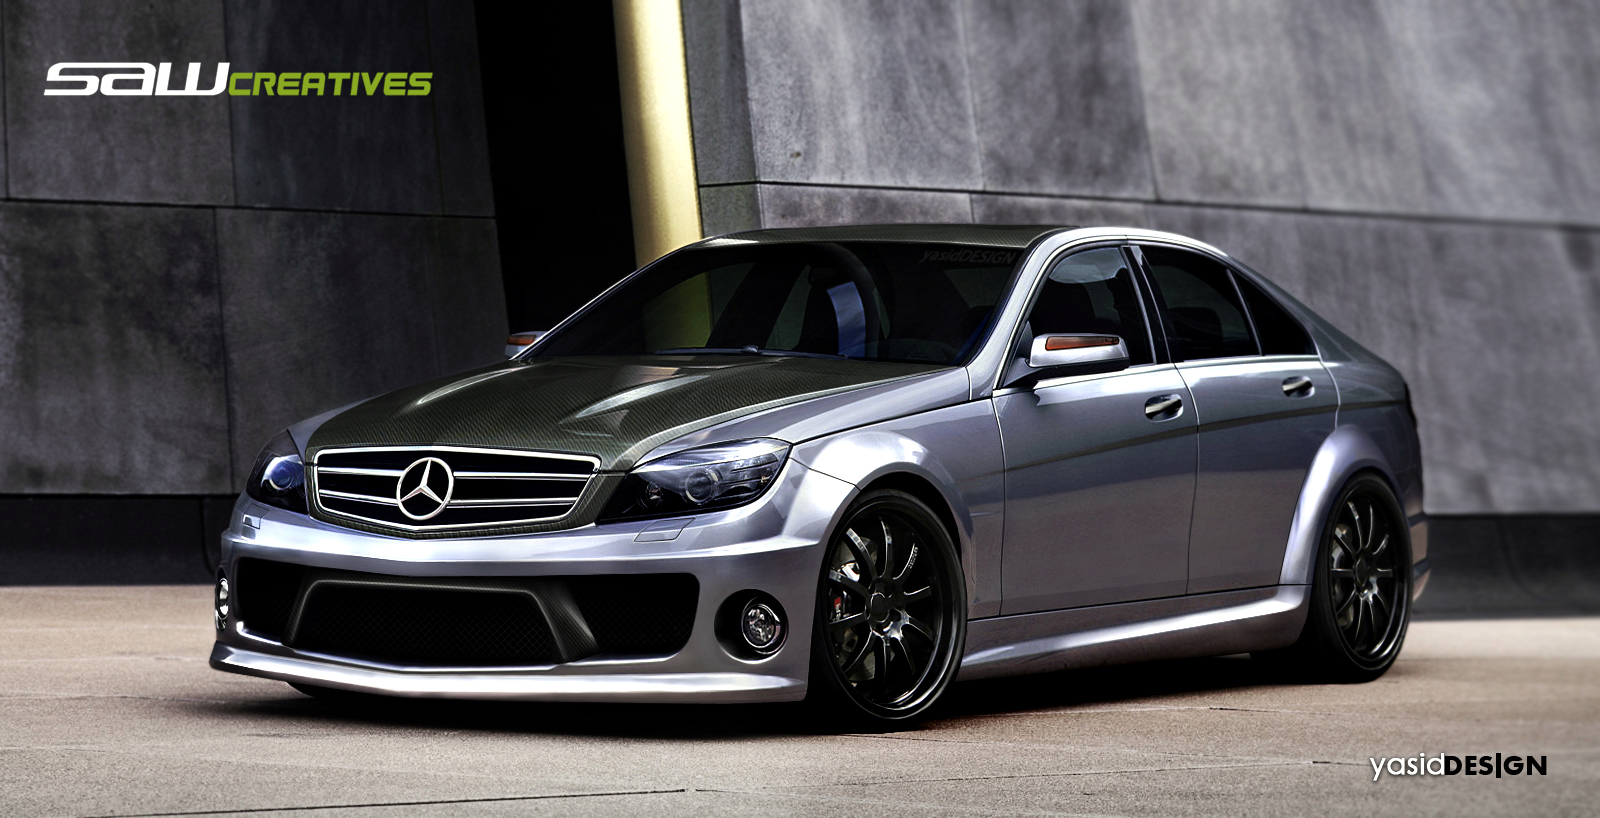 Mercedes benz c63 amg 2008 by yasiddesign on deviantart for 2008 mercedes benz amg